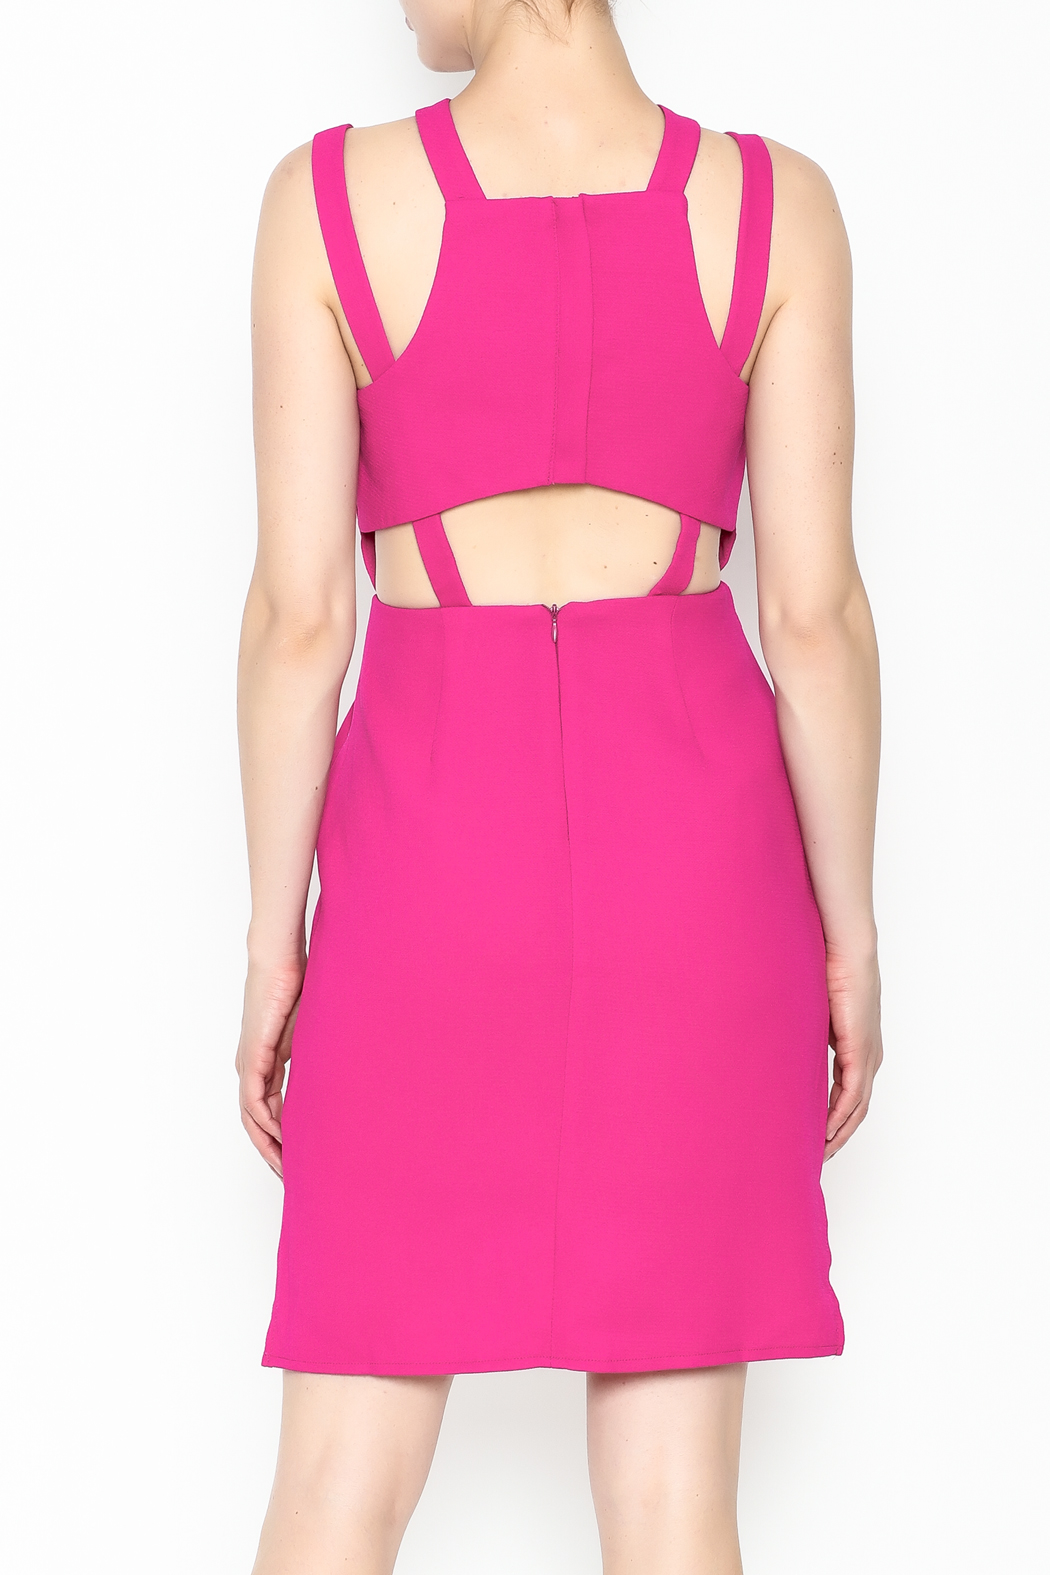 19 Cooper Open Back Dress - Back Cropped Image